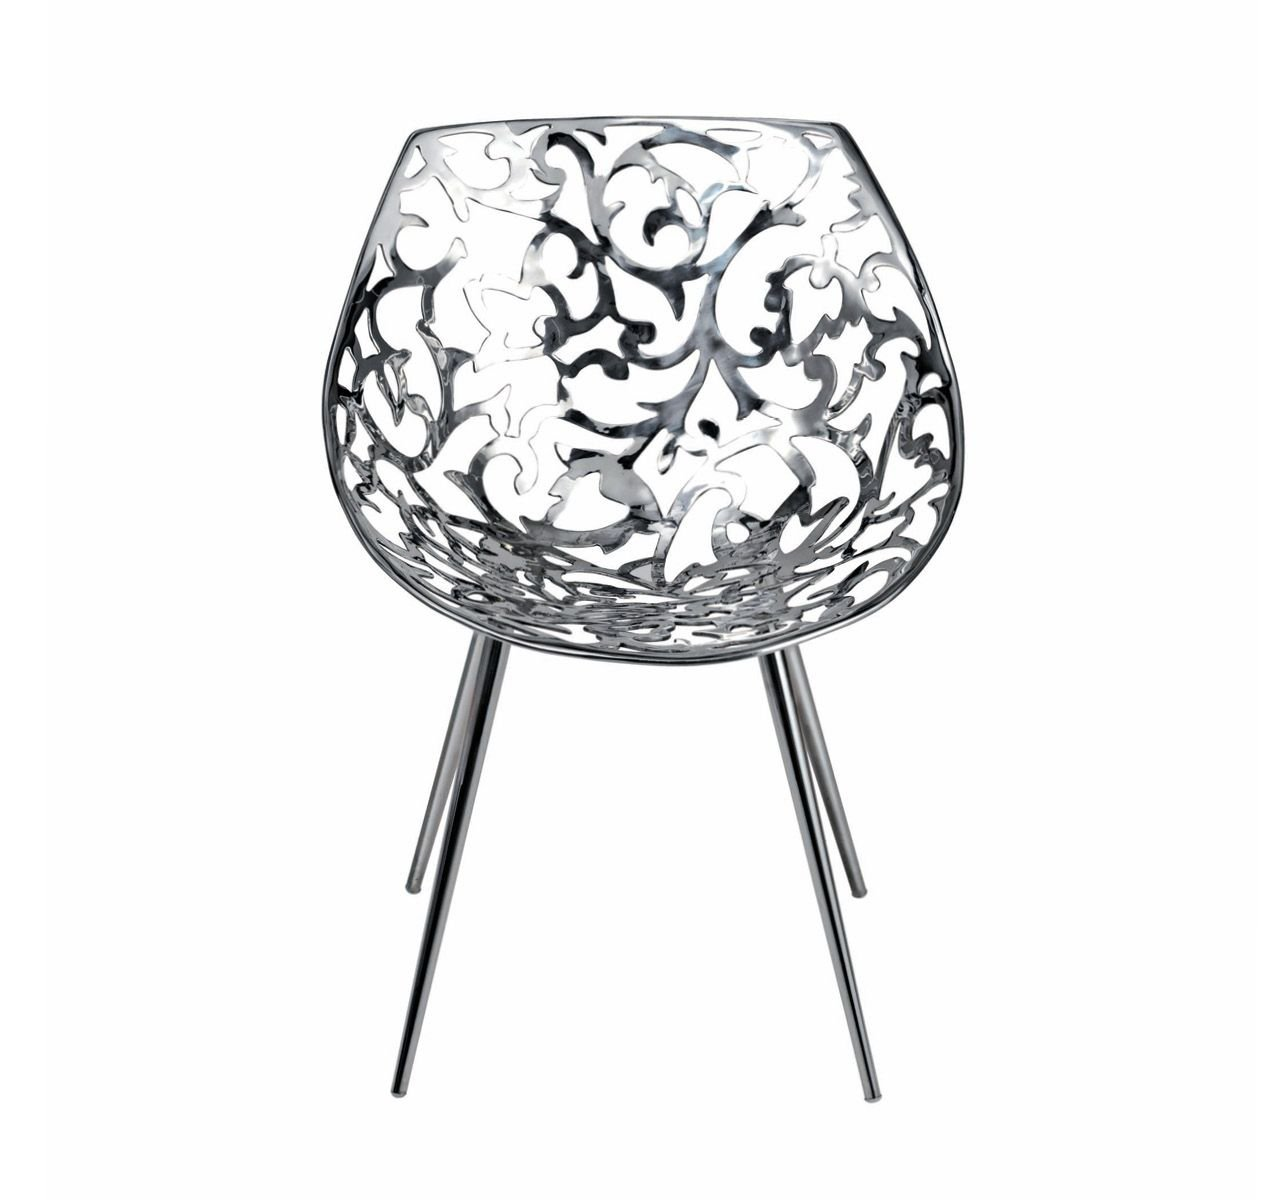 Miss Lacy Chair from Driade